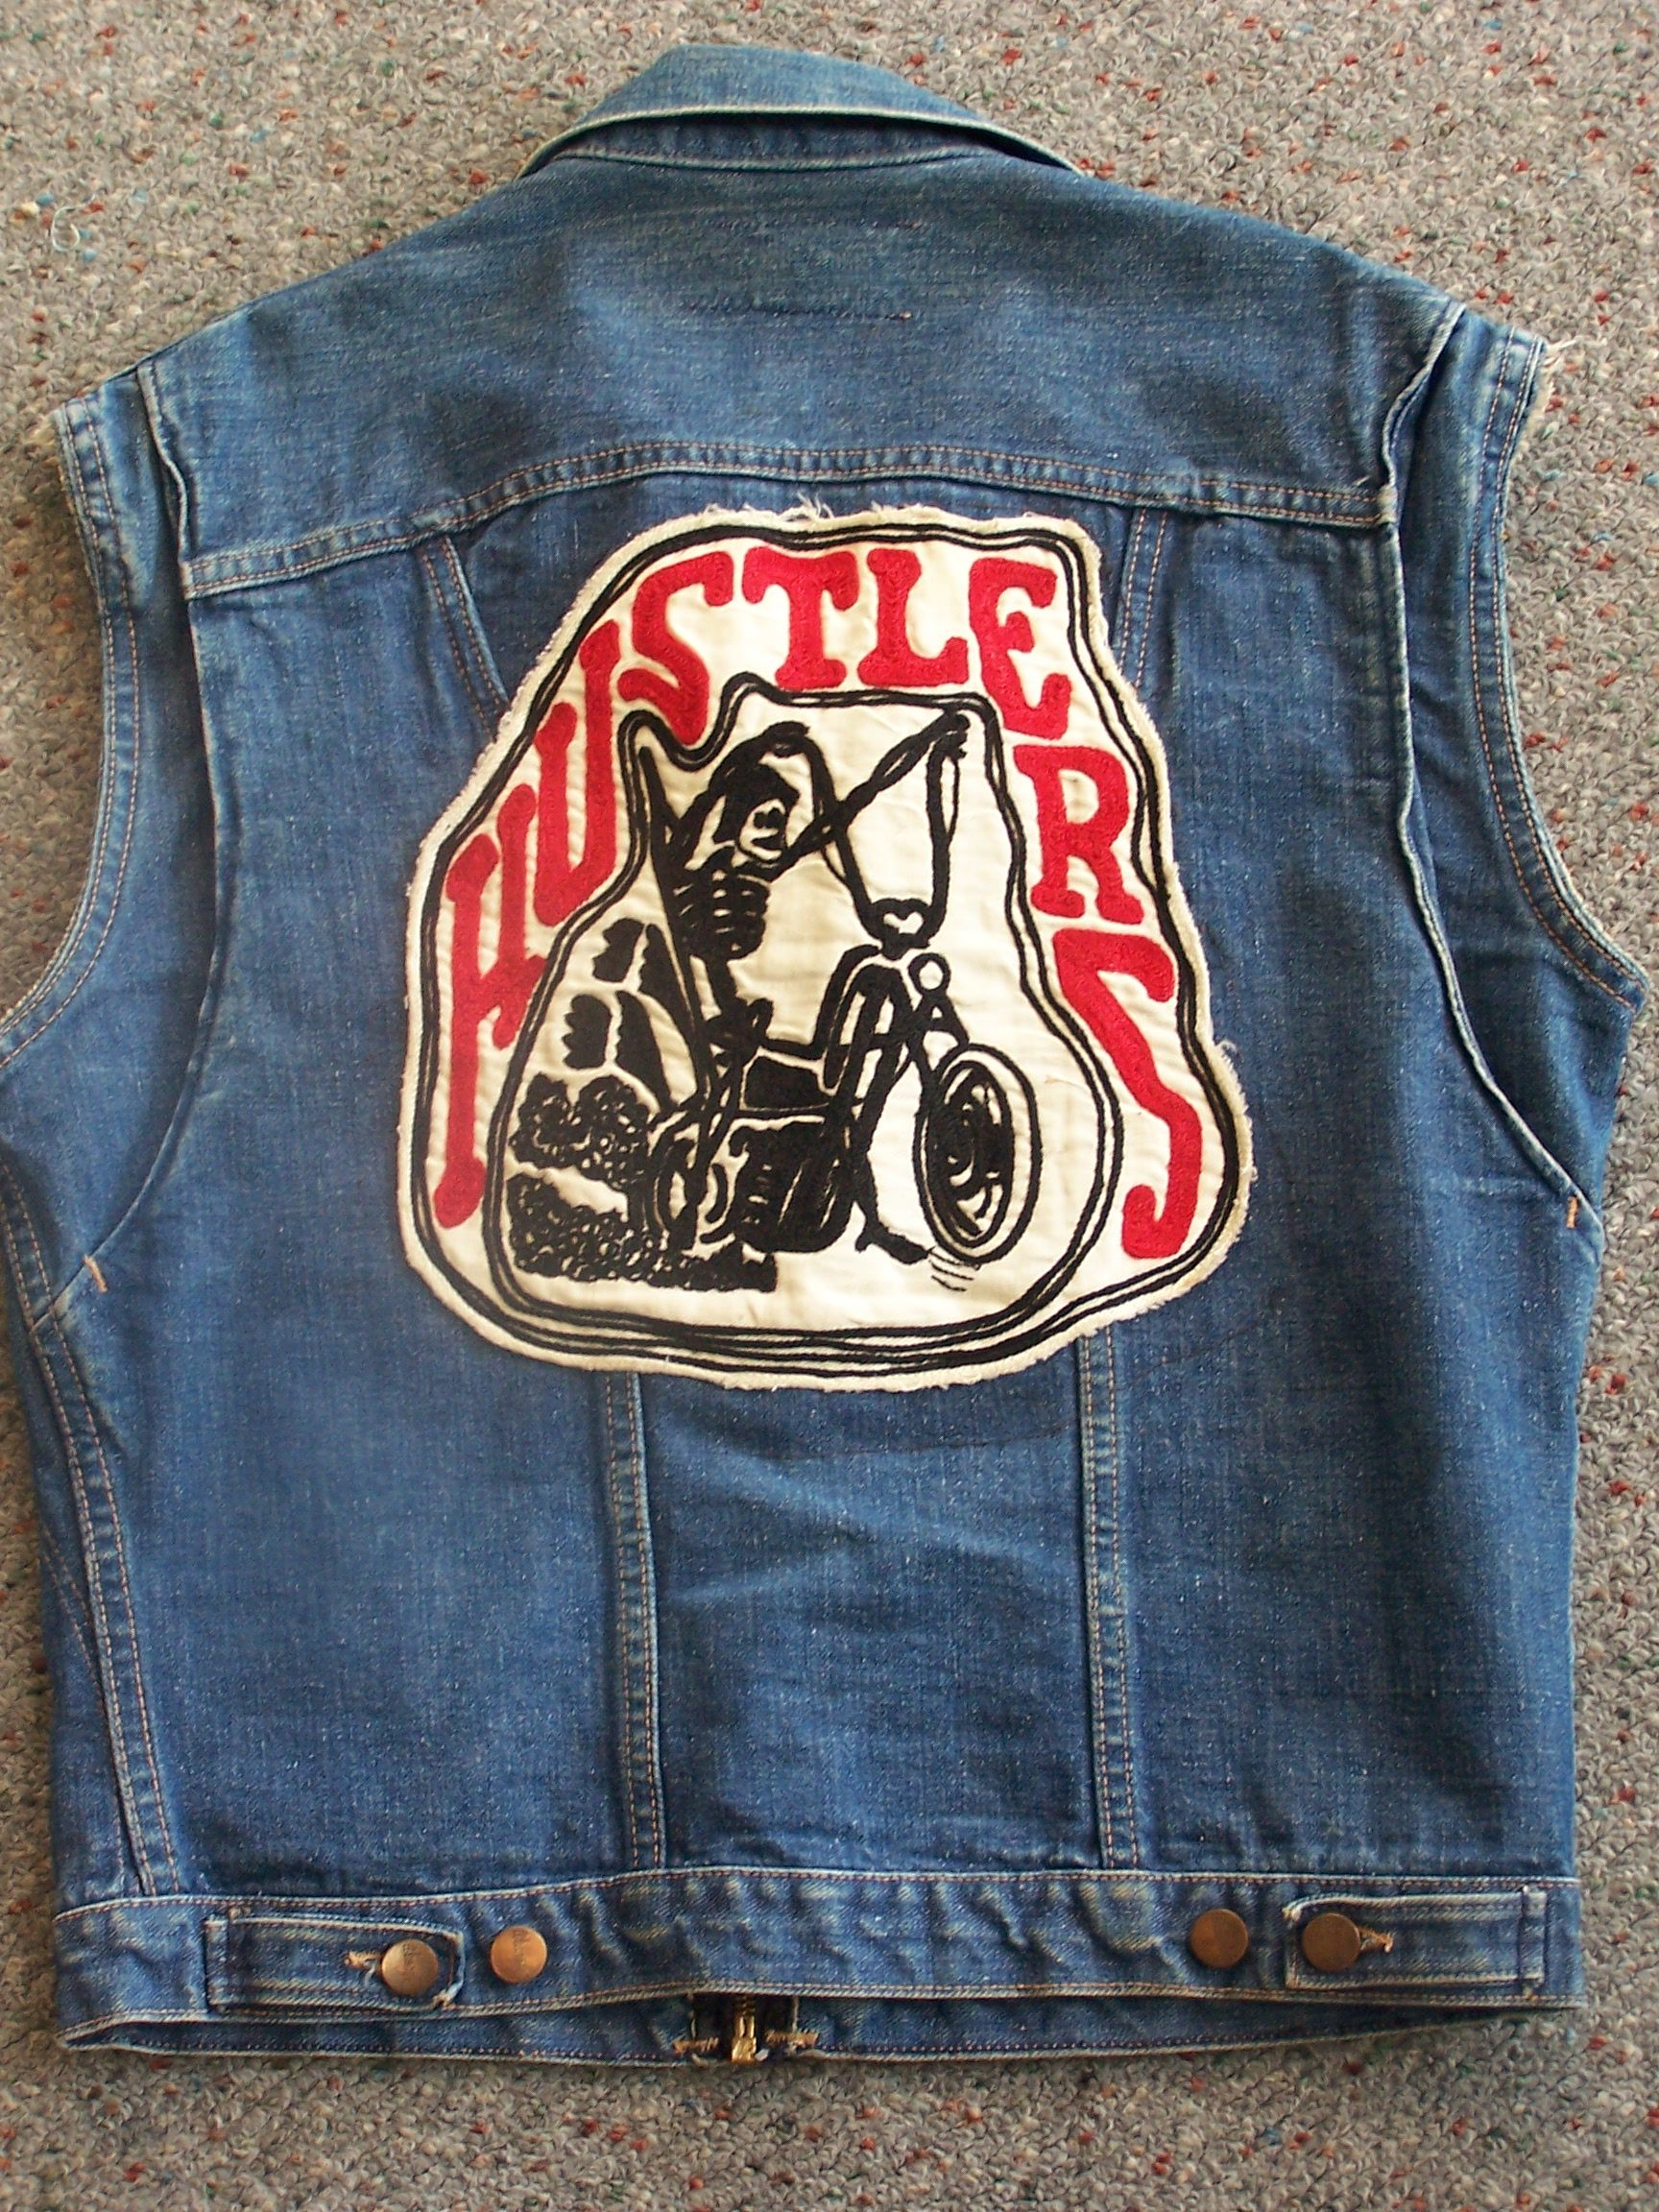 Hustlers! Greaser style, Detroit tattoo, Bike clothes